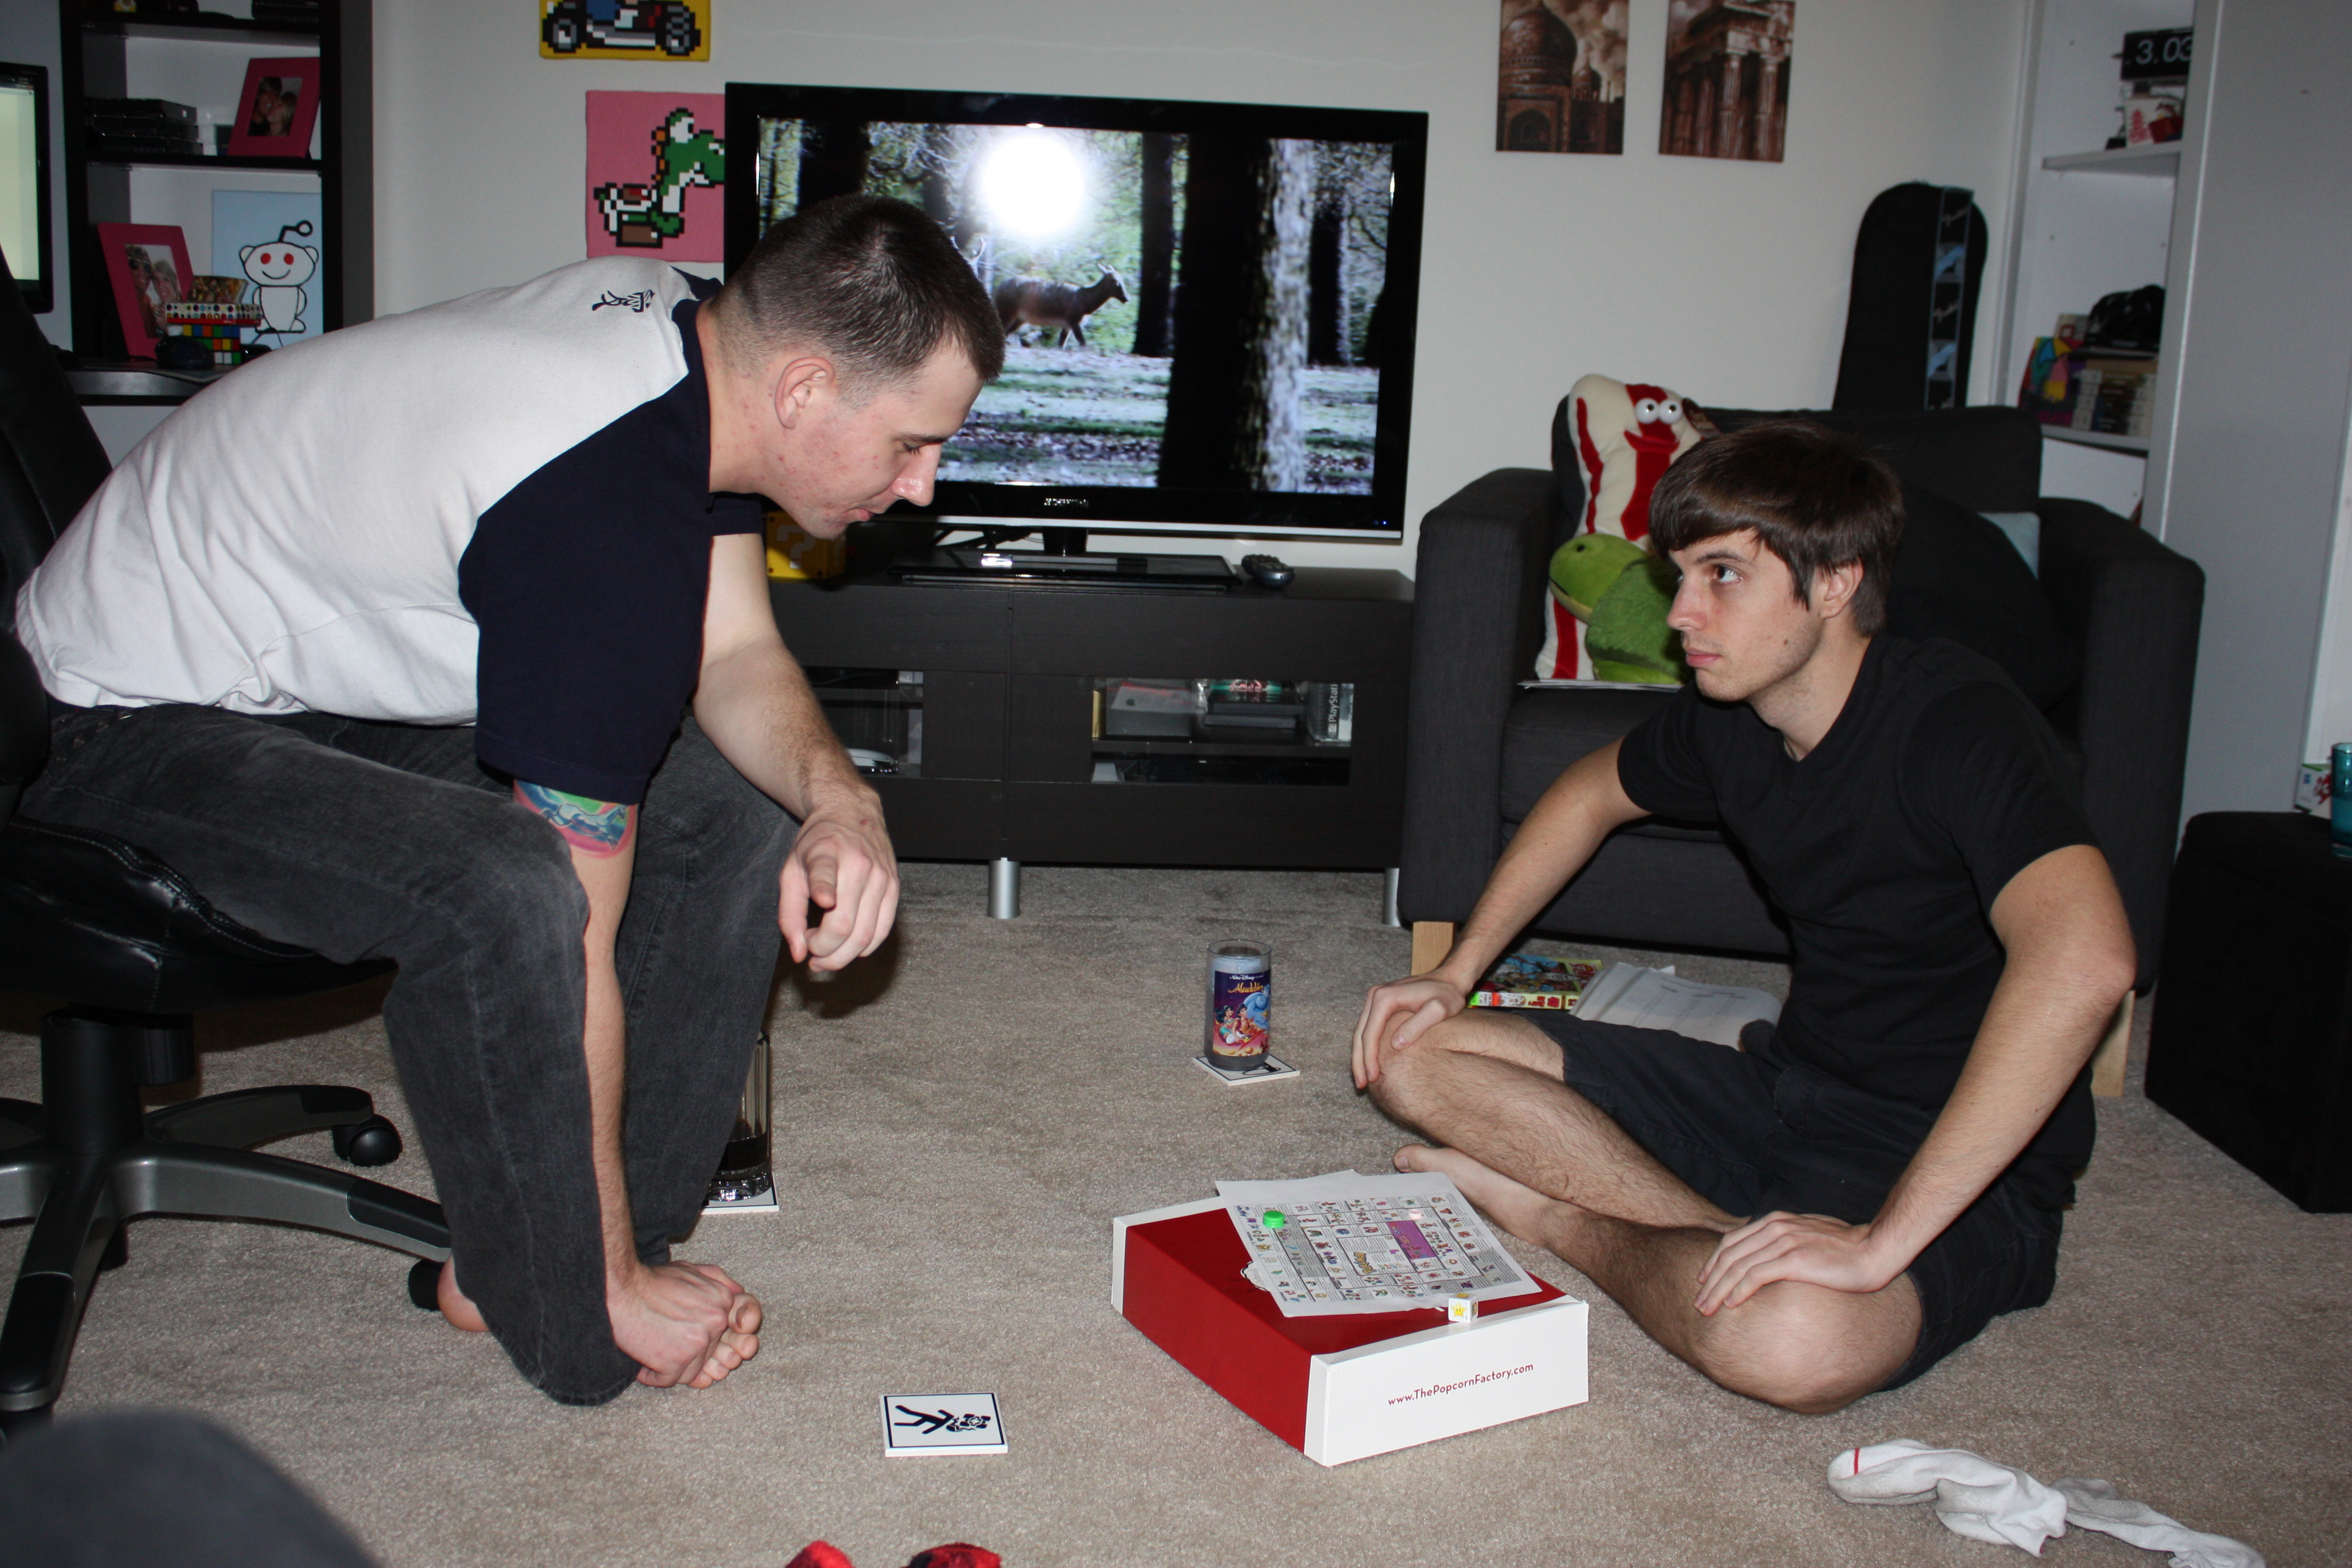 David Holden and Cody Rapol playing the Pokemon drinking game